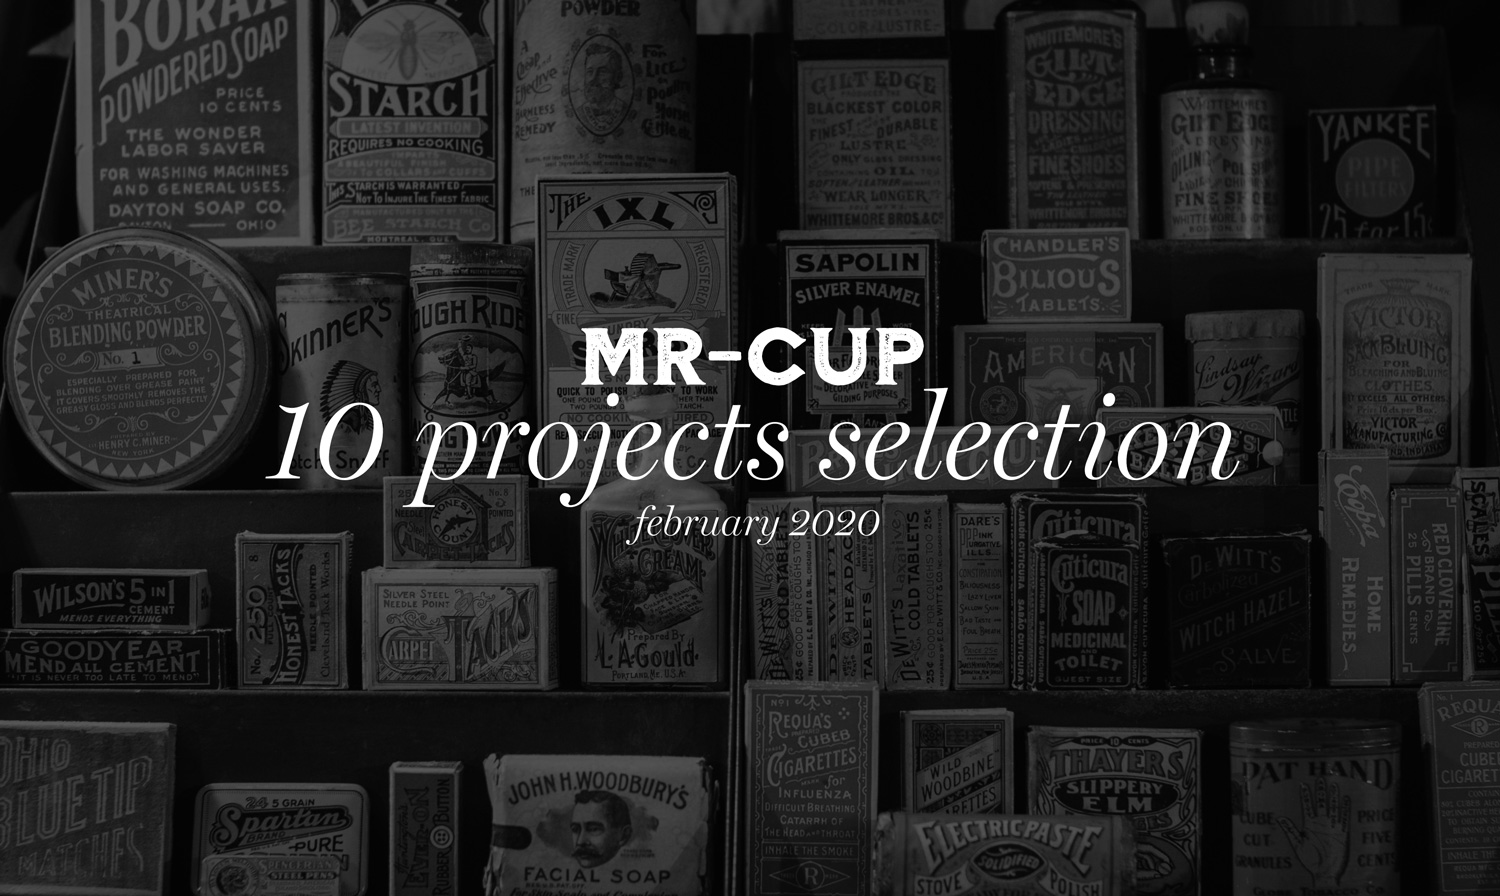 10projects022020 mrcup 01